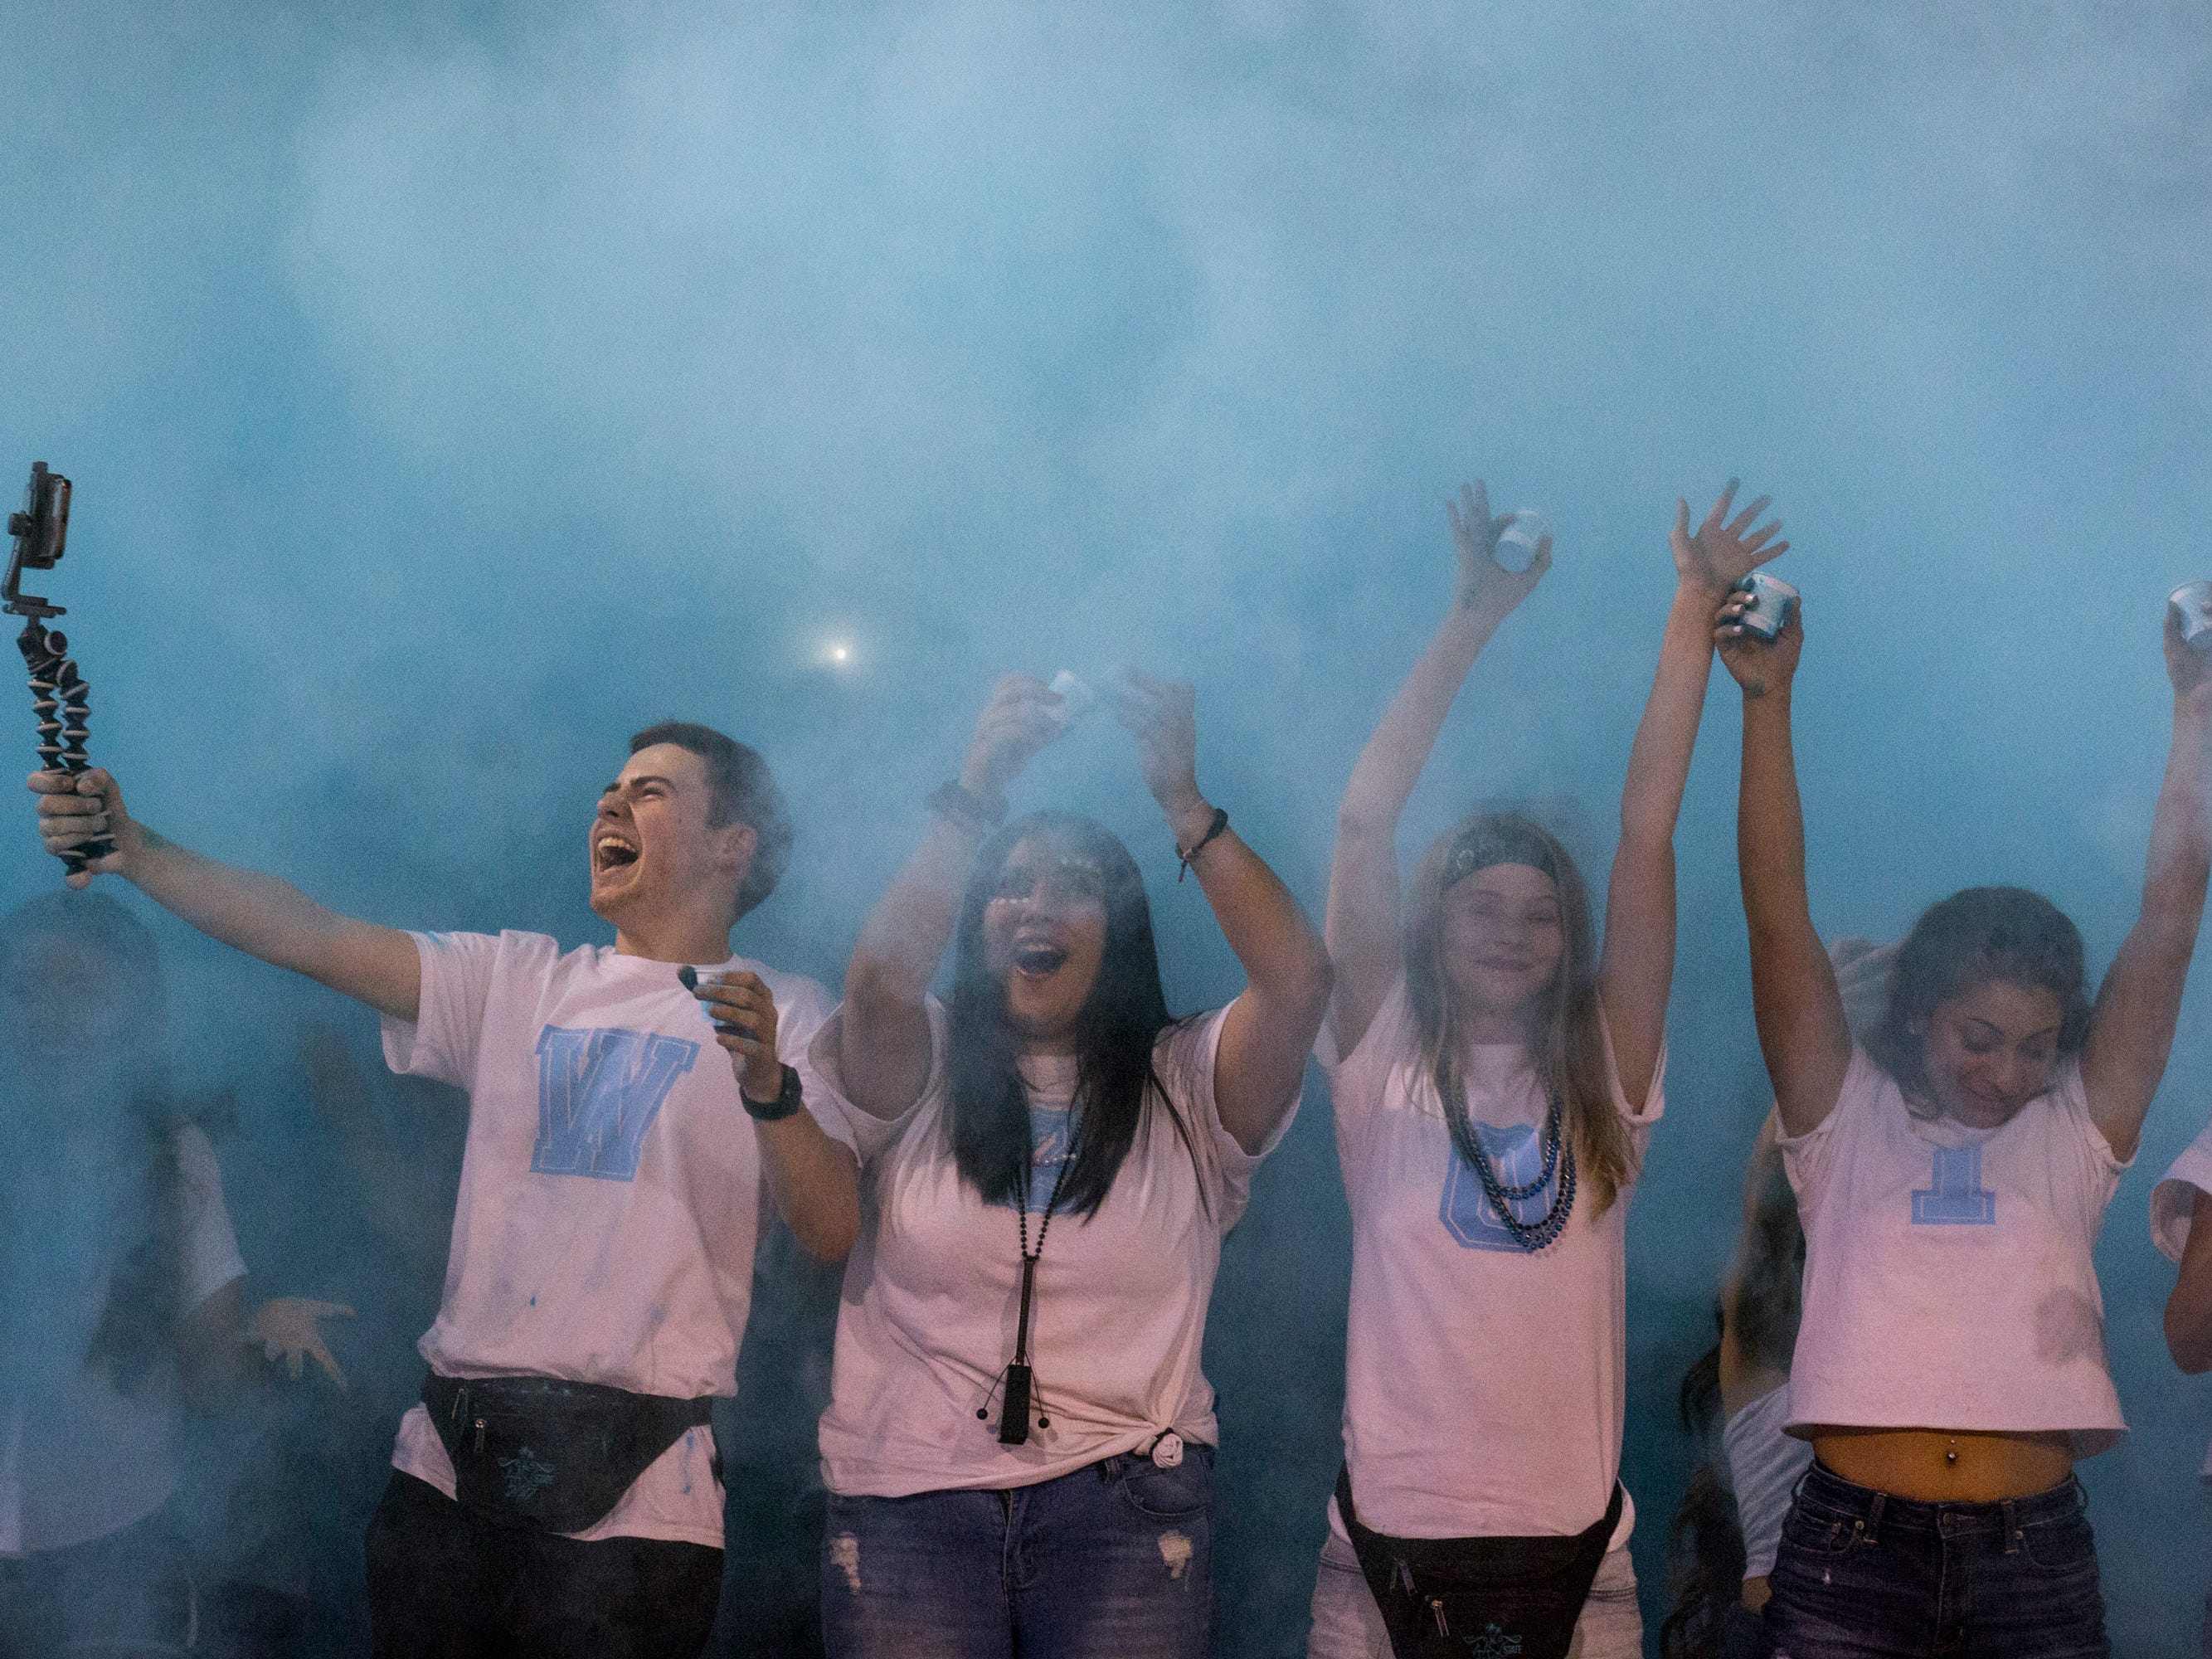 Cactus students throw up blue powder during the game against Salpointe on Friday, Sept. 14, 2018, at Cactus High School in Glendale, Ariz.#azhsfb